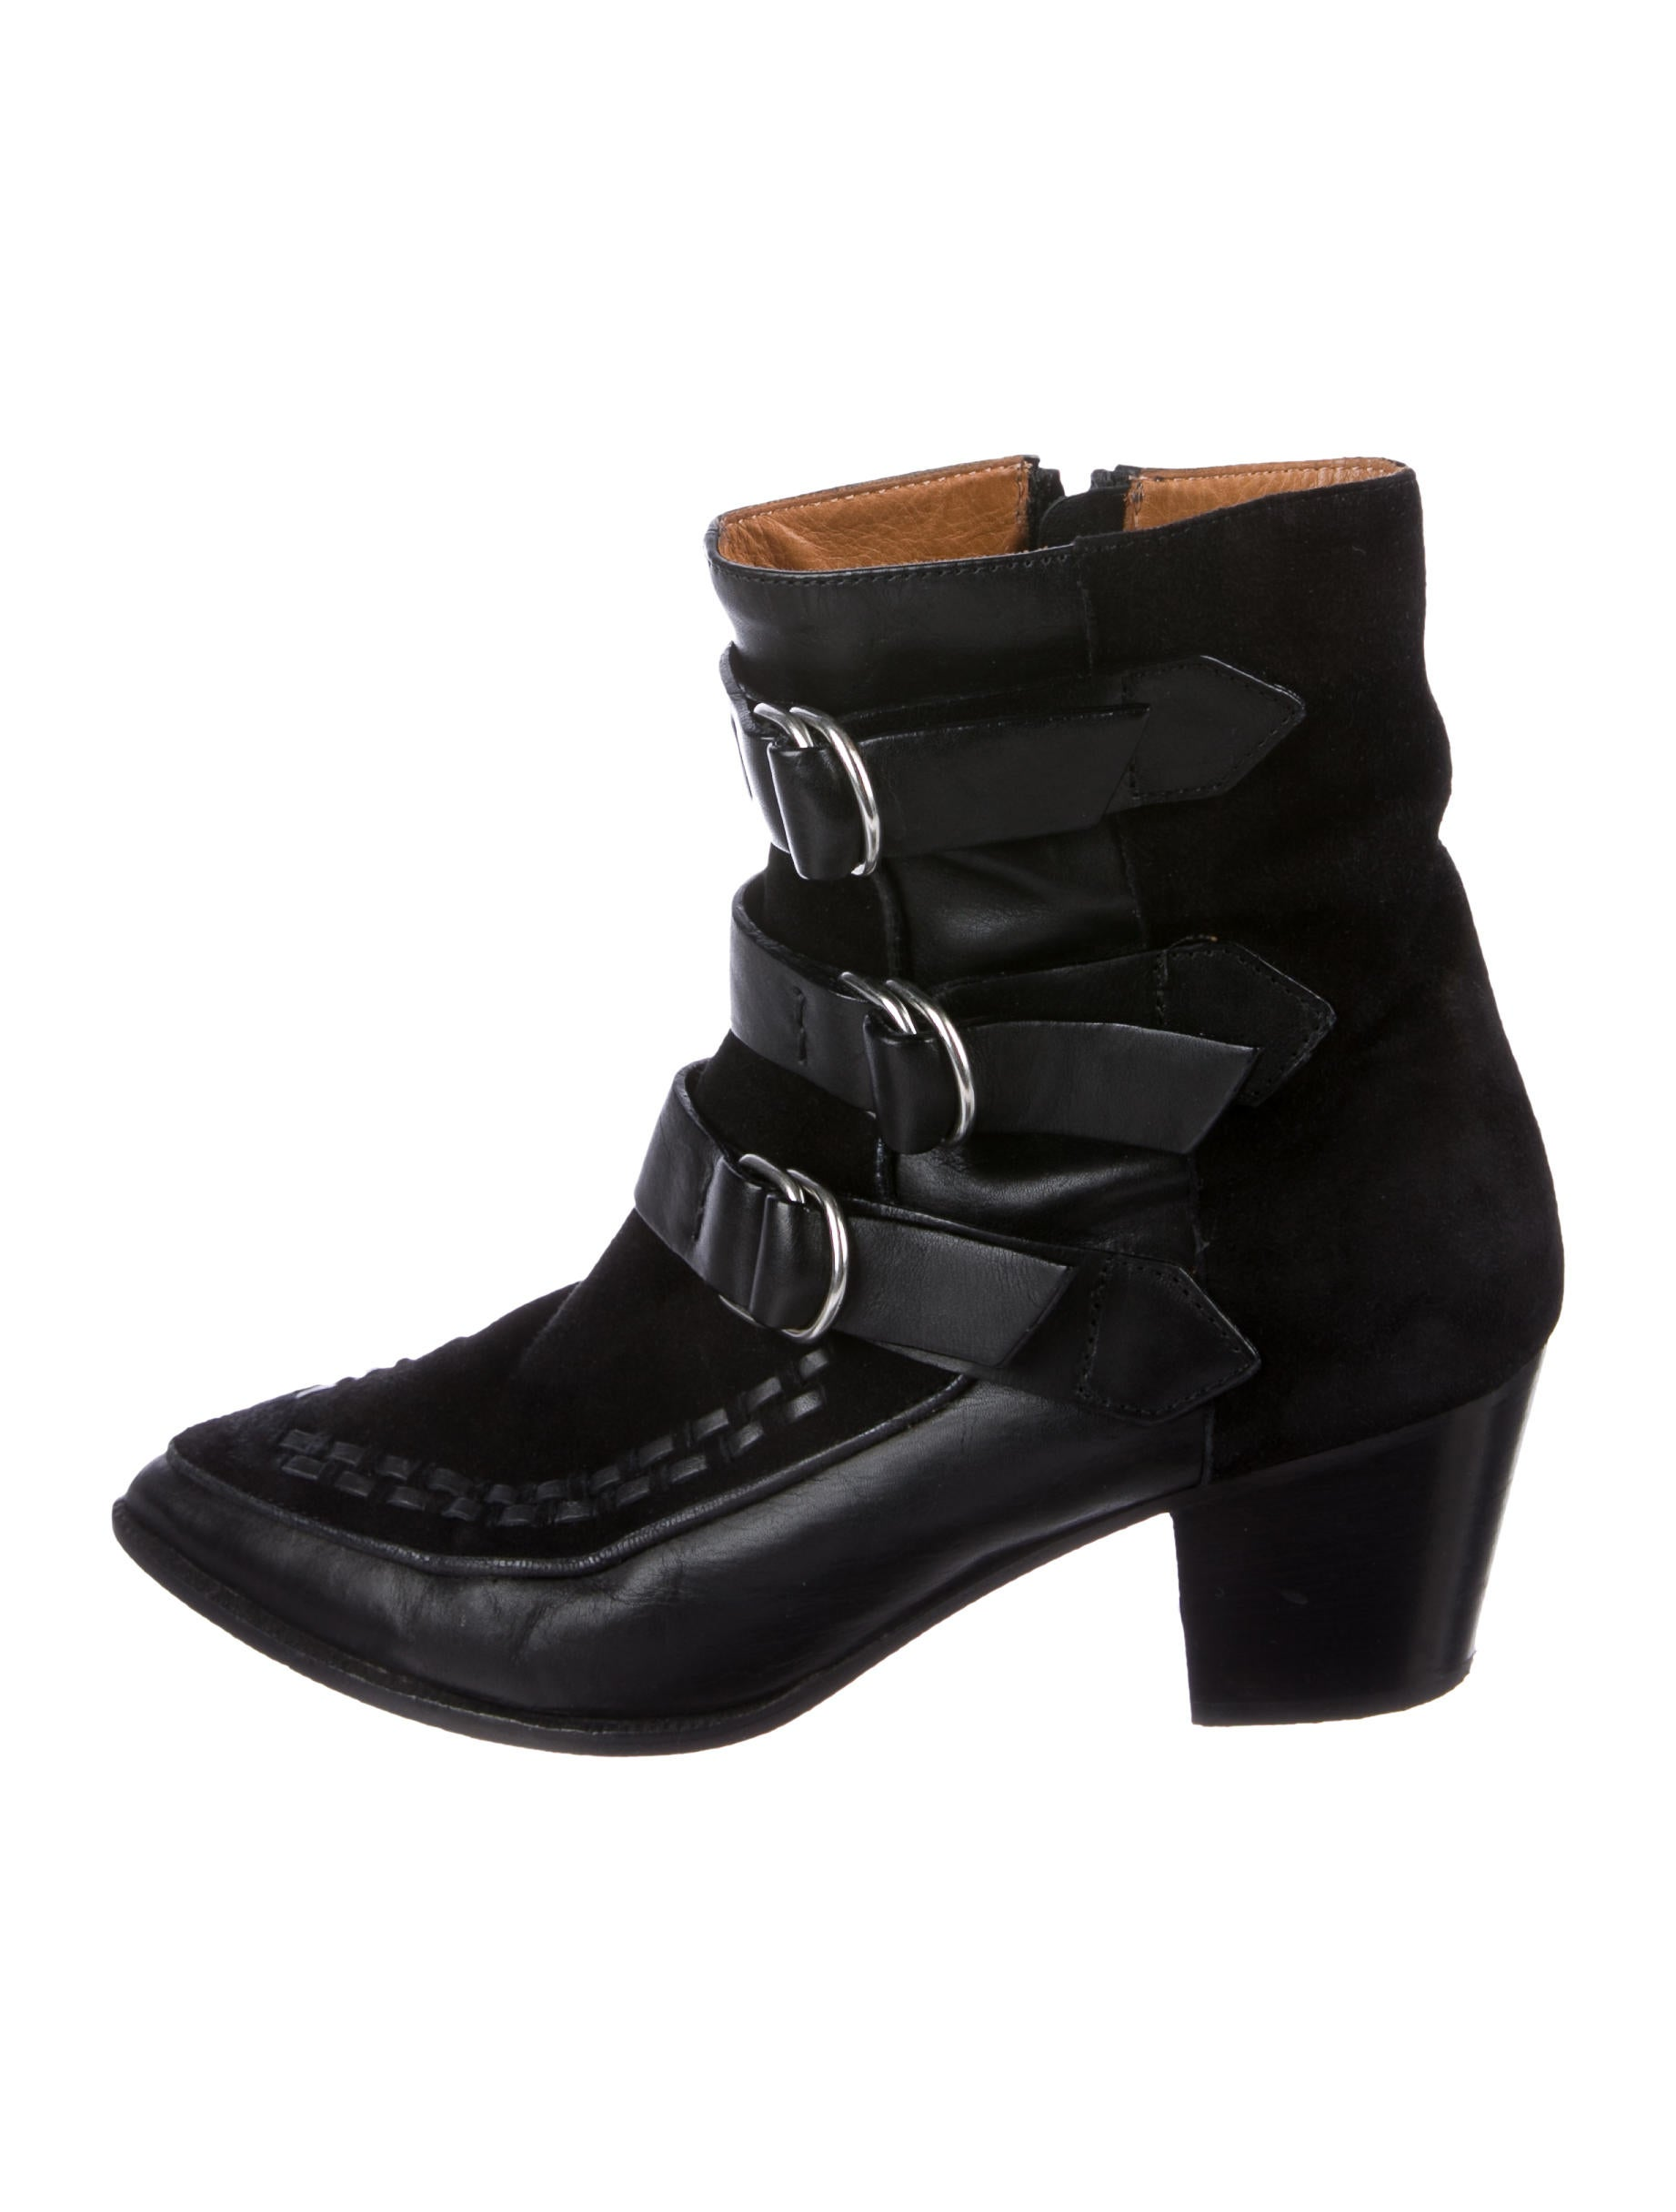 Isabel Marant Leather Pointed-Toe Boots footlocker online g3K8TW96D